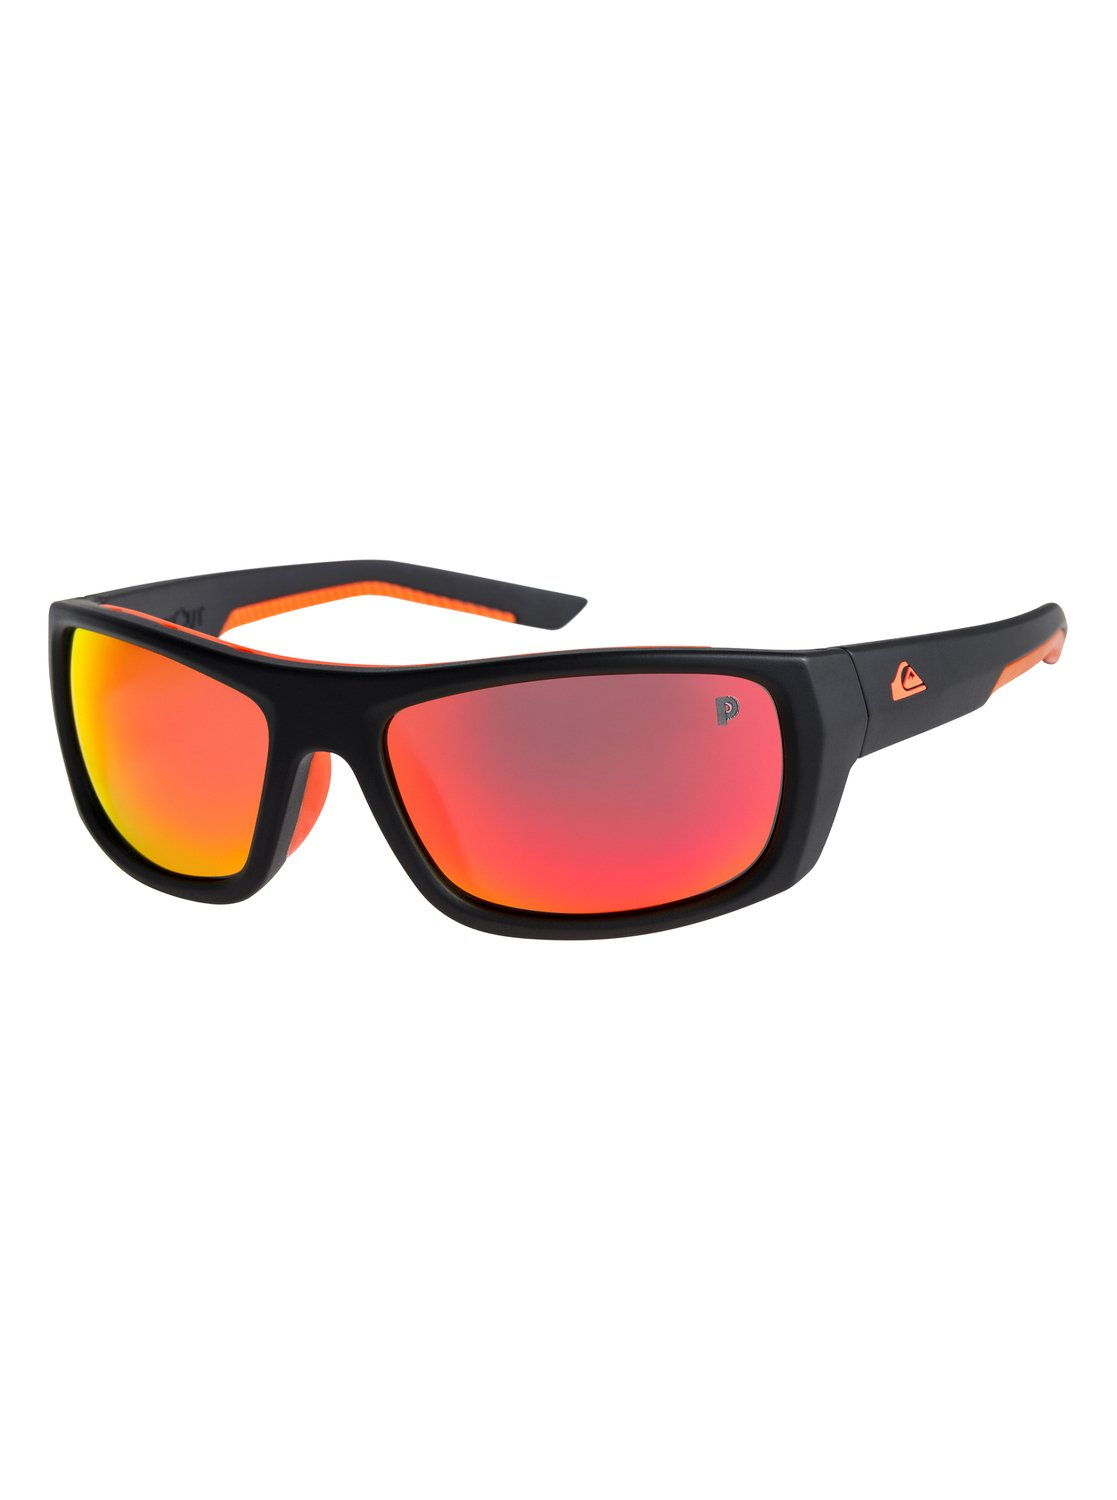 Knockout Polarized Floatable - Sunglasses